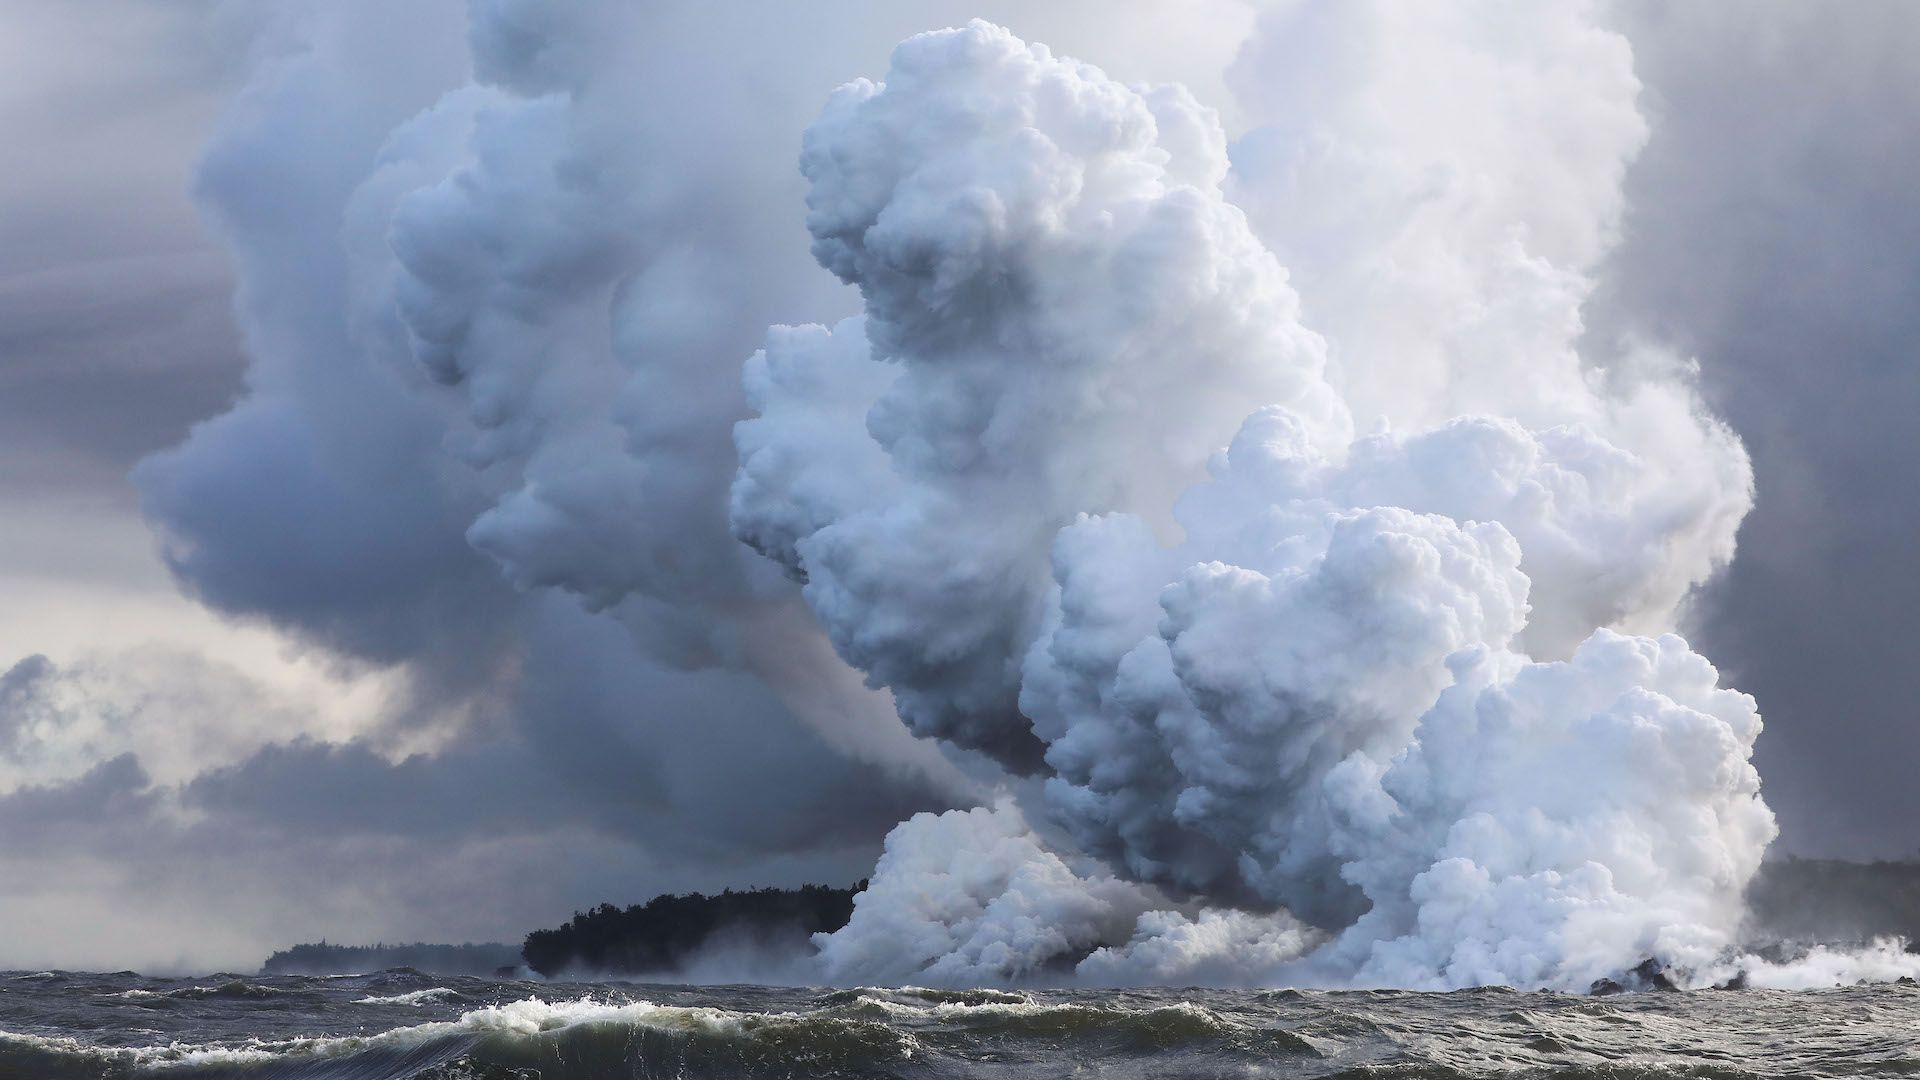 Steam plumes rise as lava enters the Pacific Ocean, after flowing to the water from a Kilauea volcano fissure, on Hawaii's Big Island on May 20, 2018 near Pahoa, Hawaii.